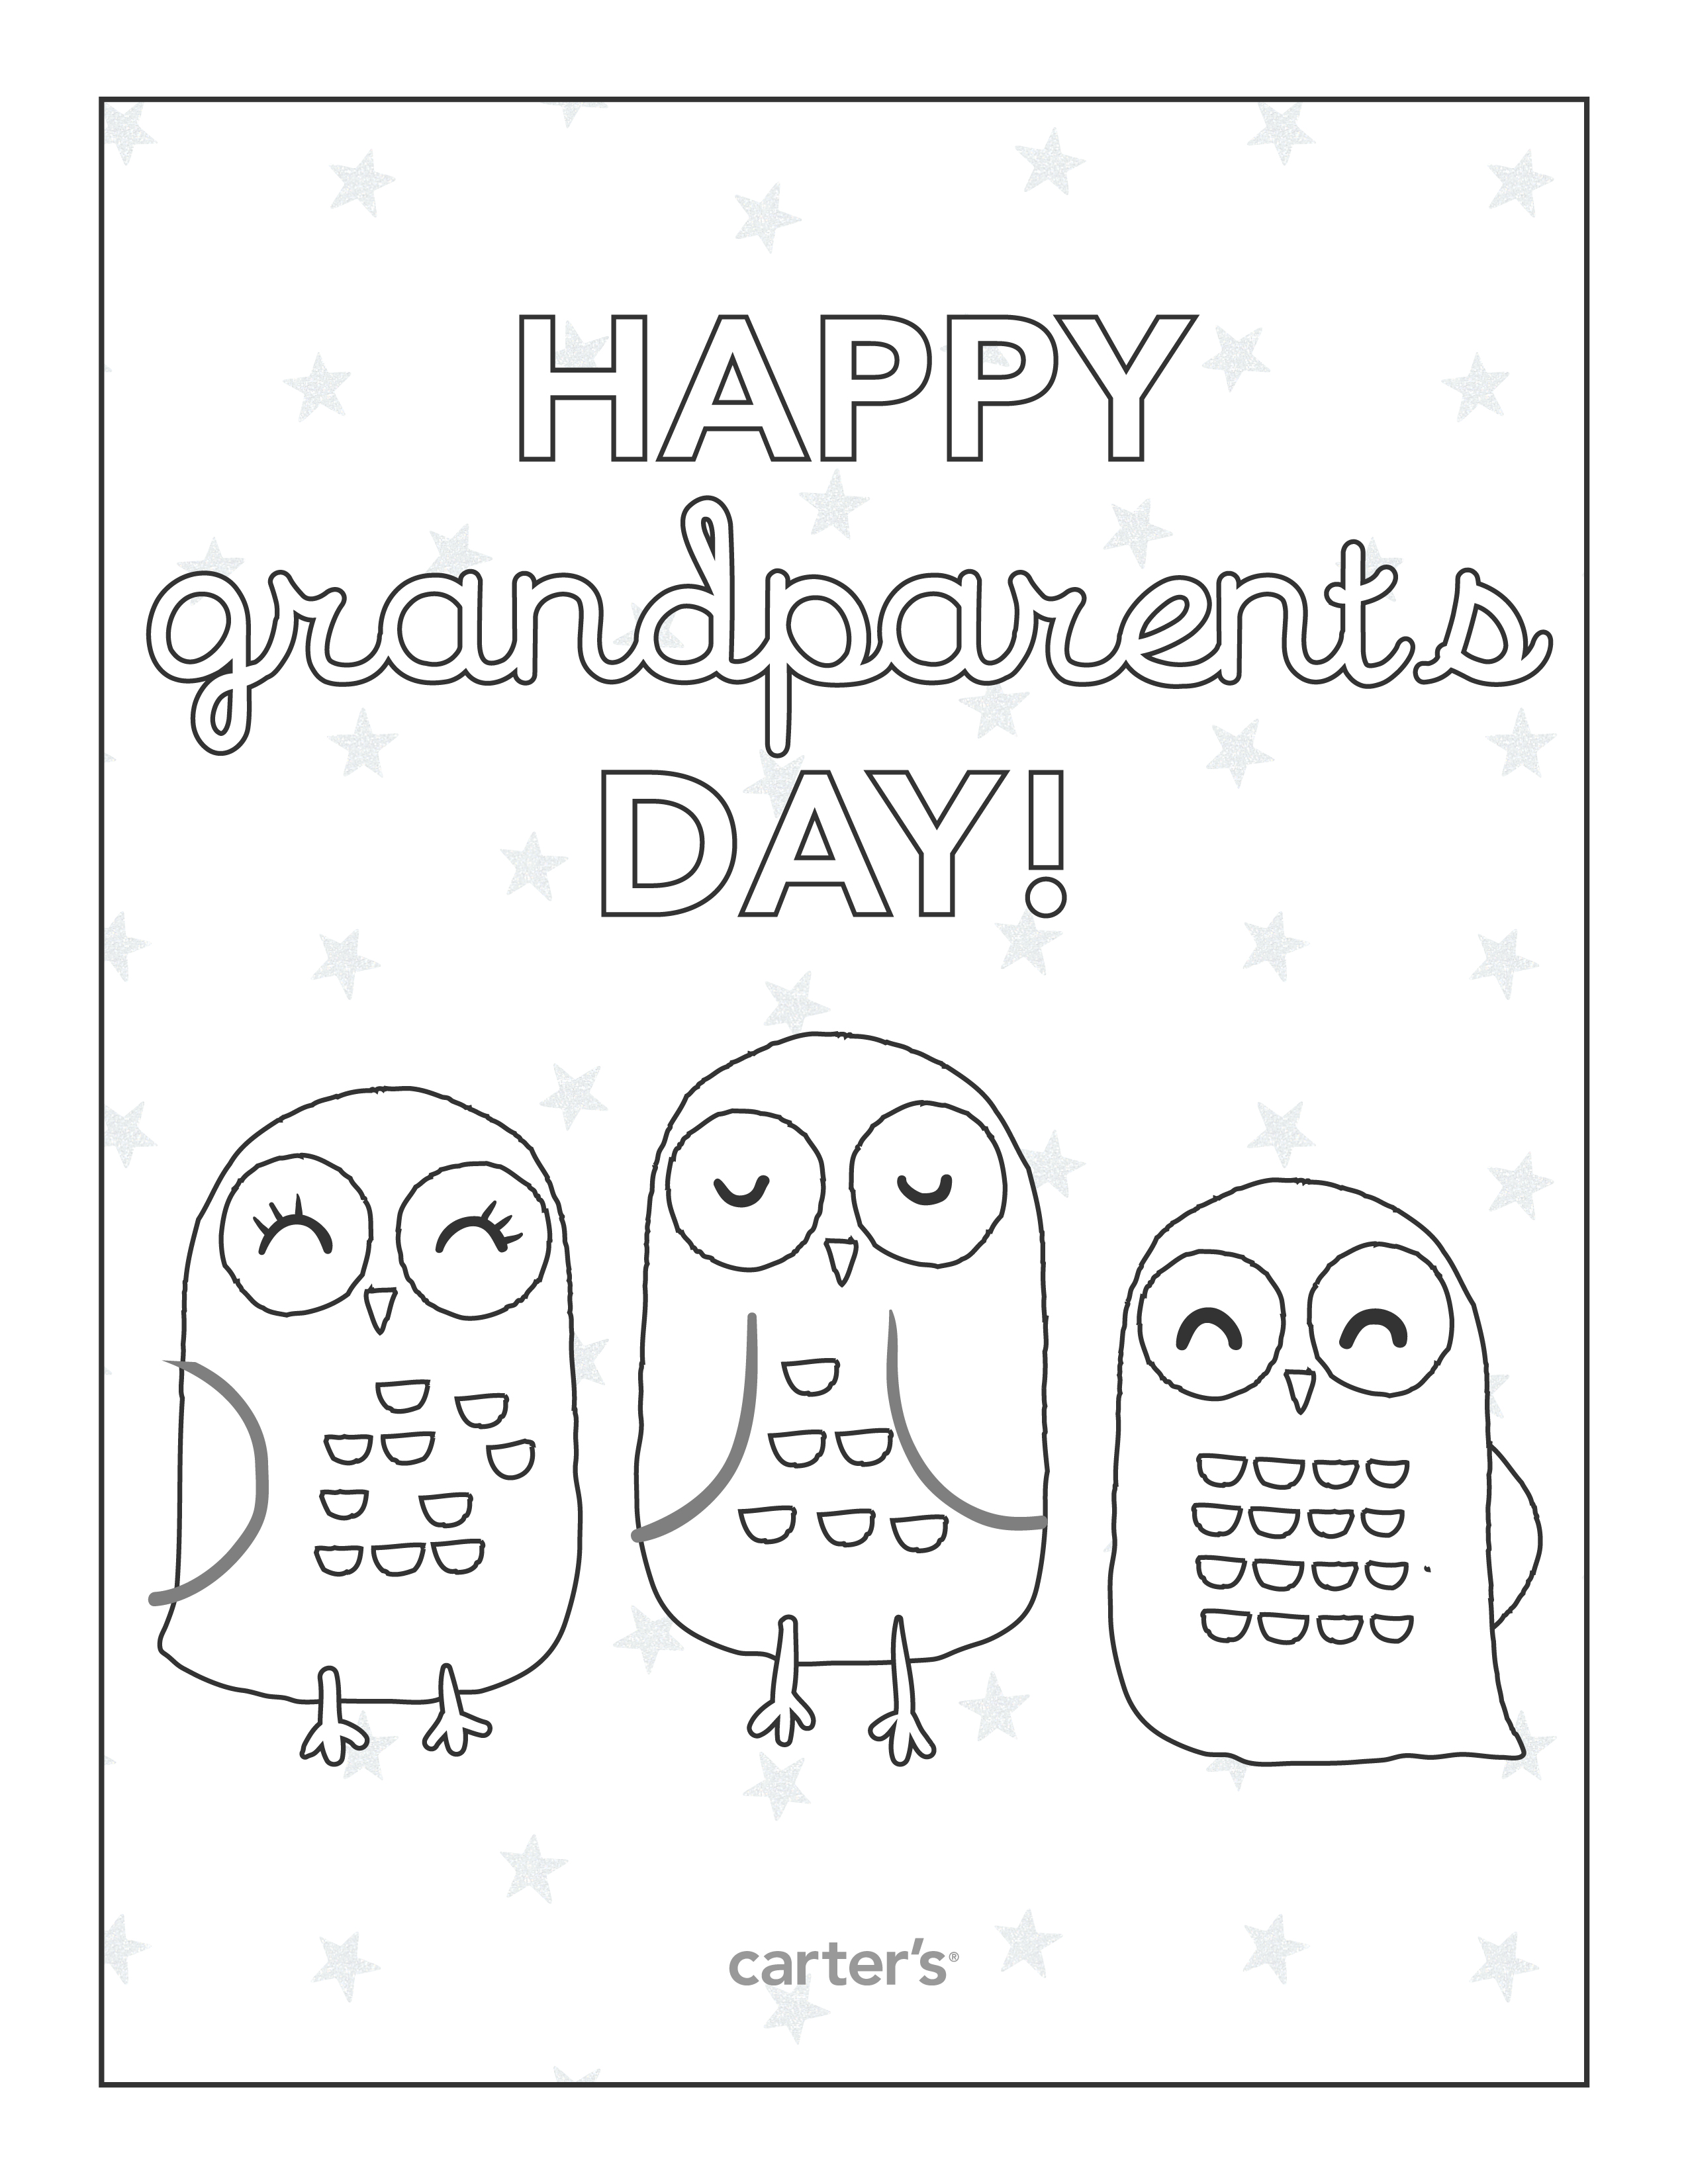 Free Printable Grandparents Day Coloring Pages From Carter Coloring Pages For Grandparents Day